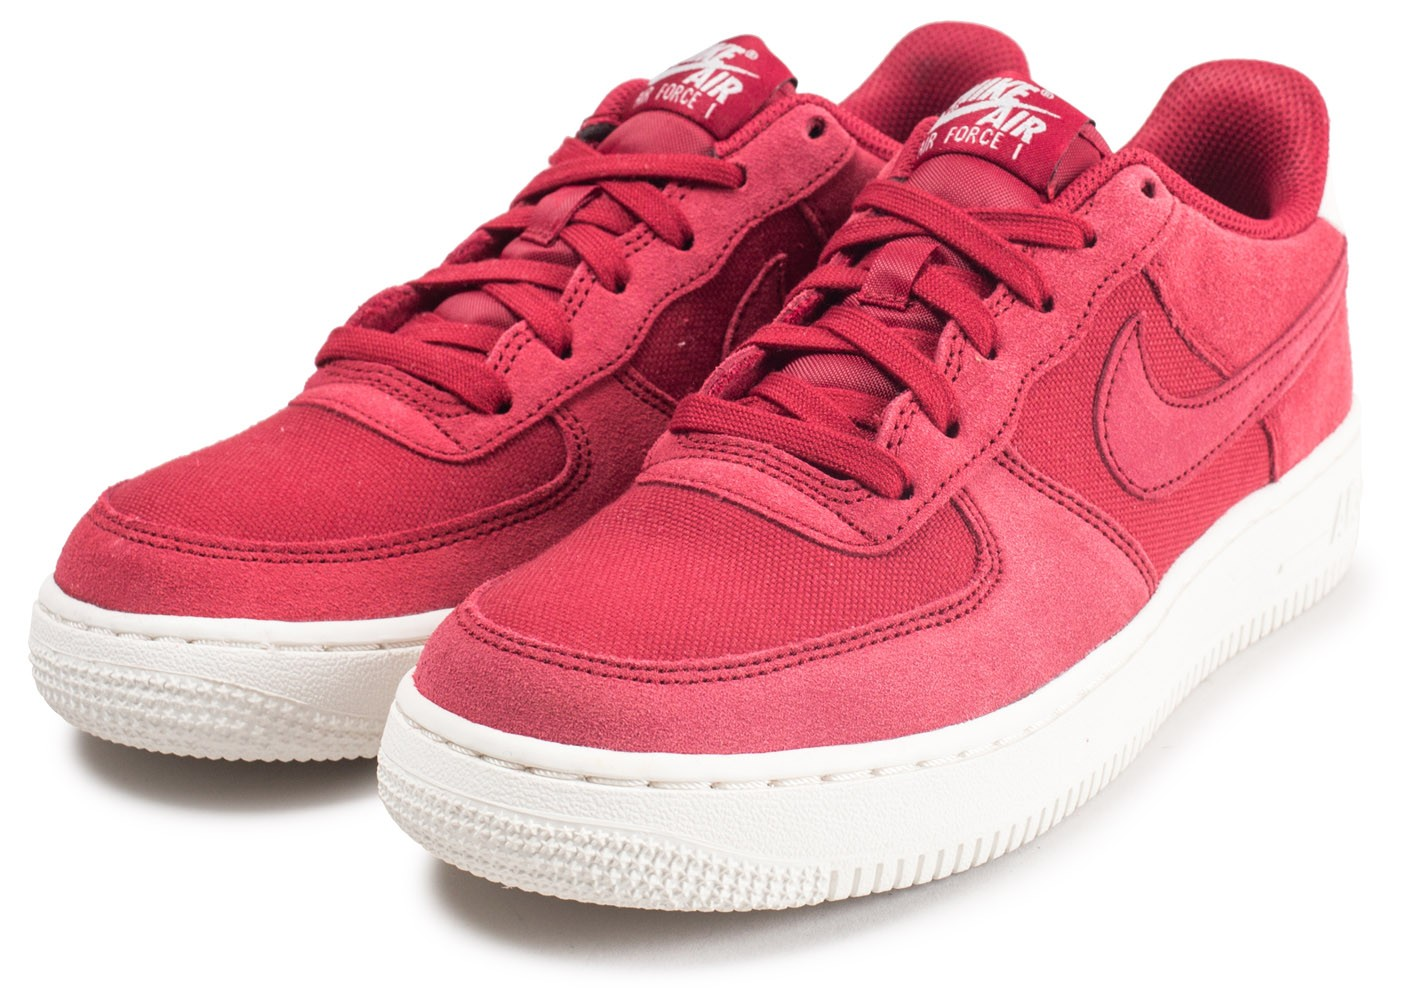 Nike Air Force 1 Suede rouge junior Chaussures Toutes les